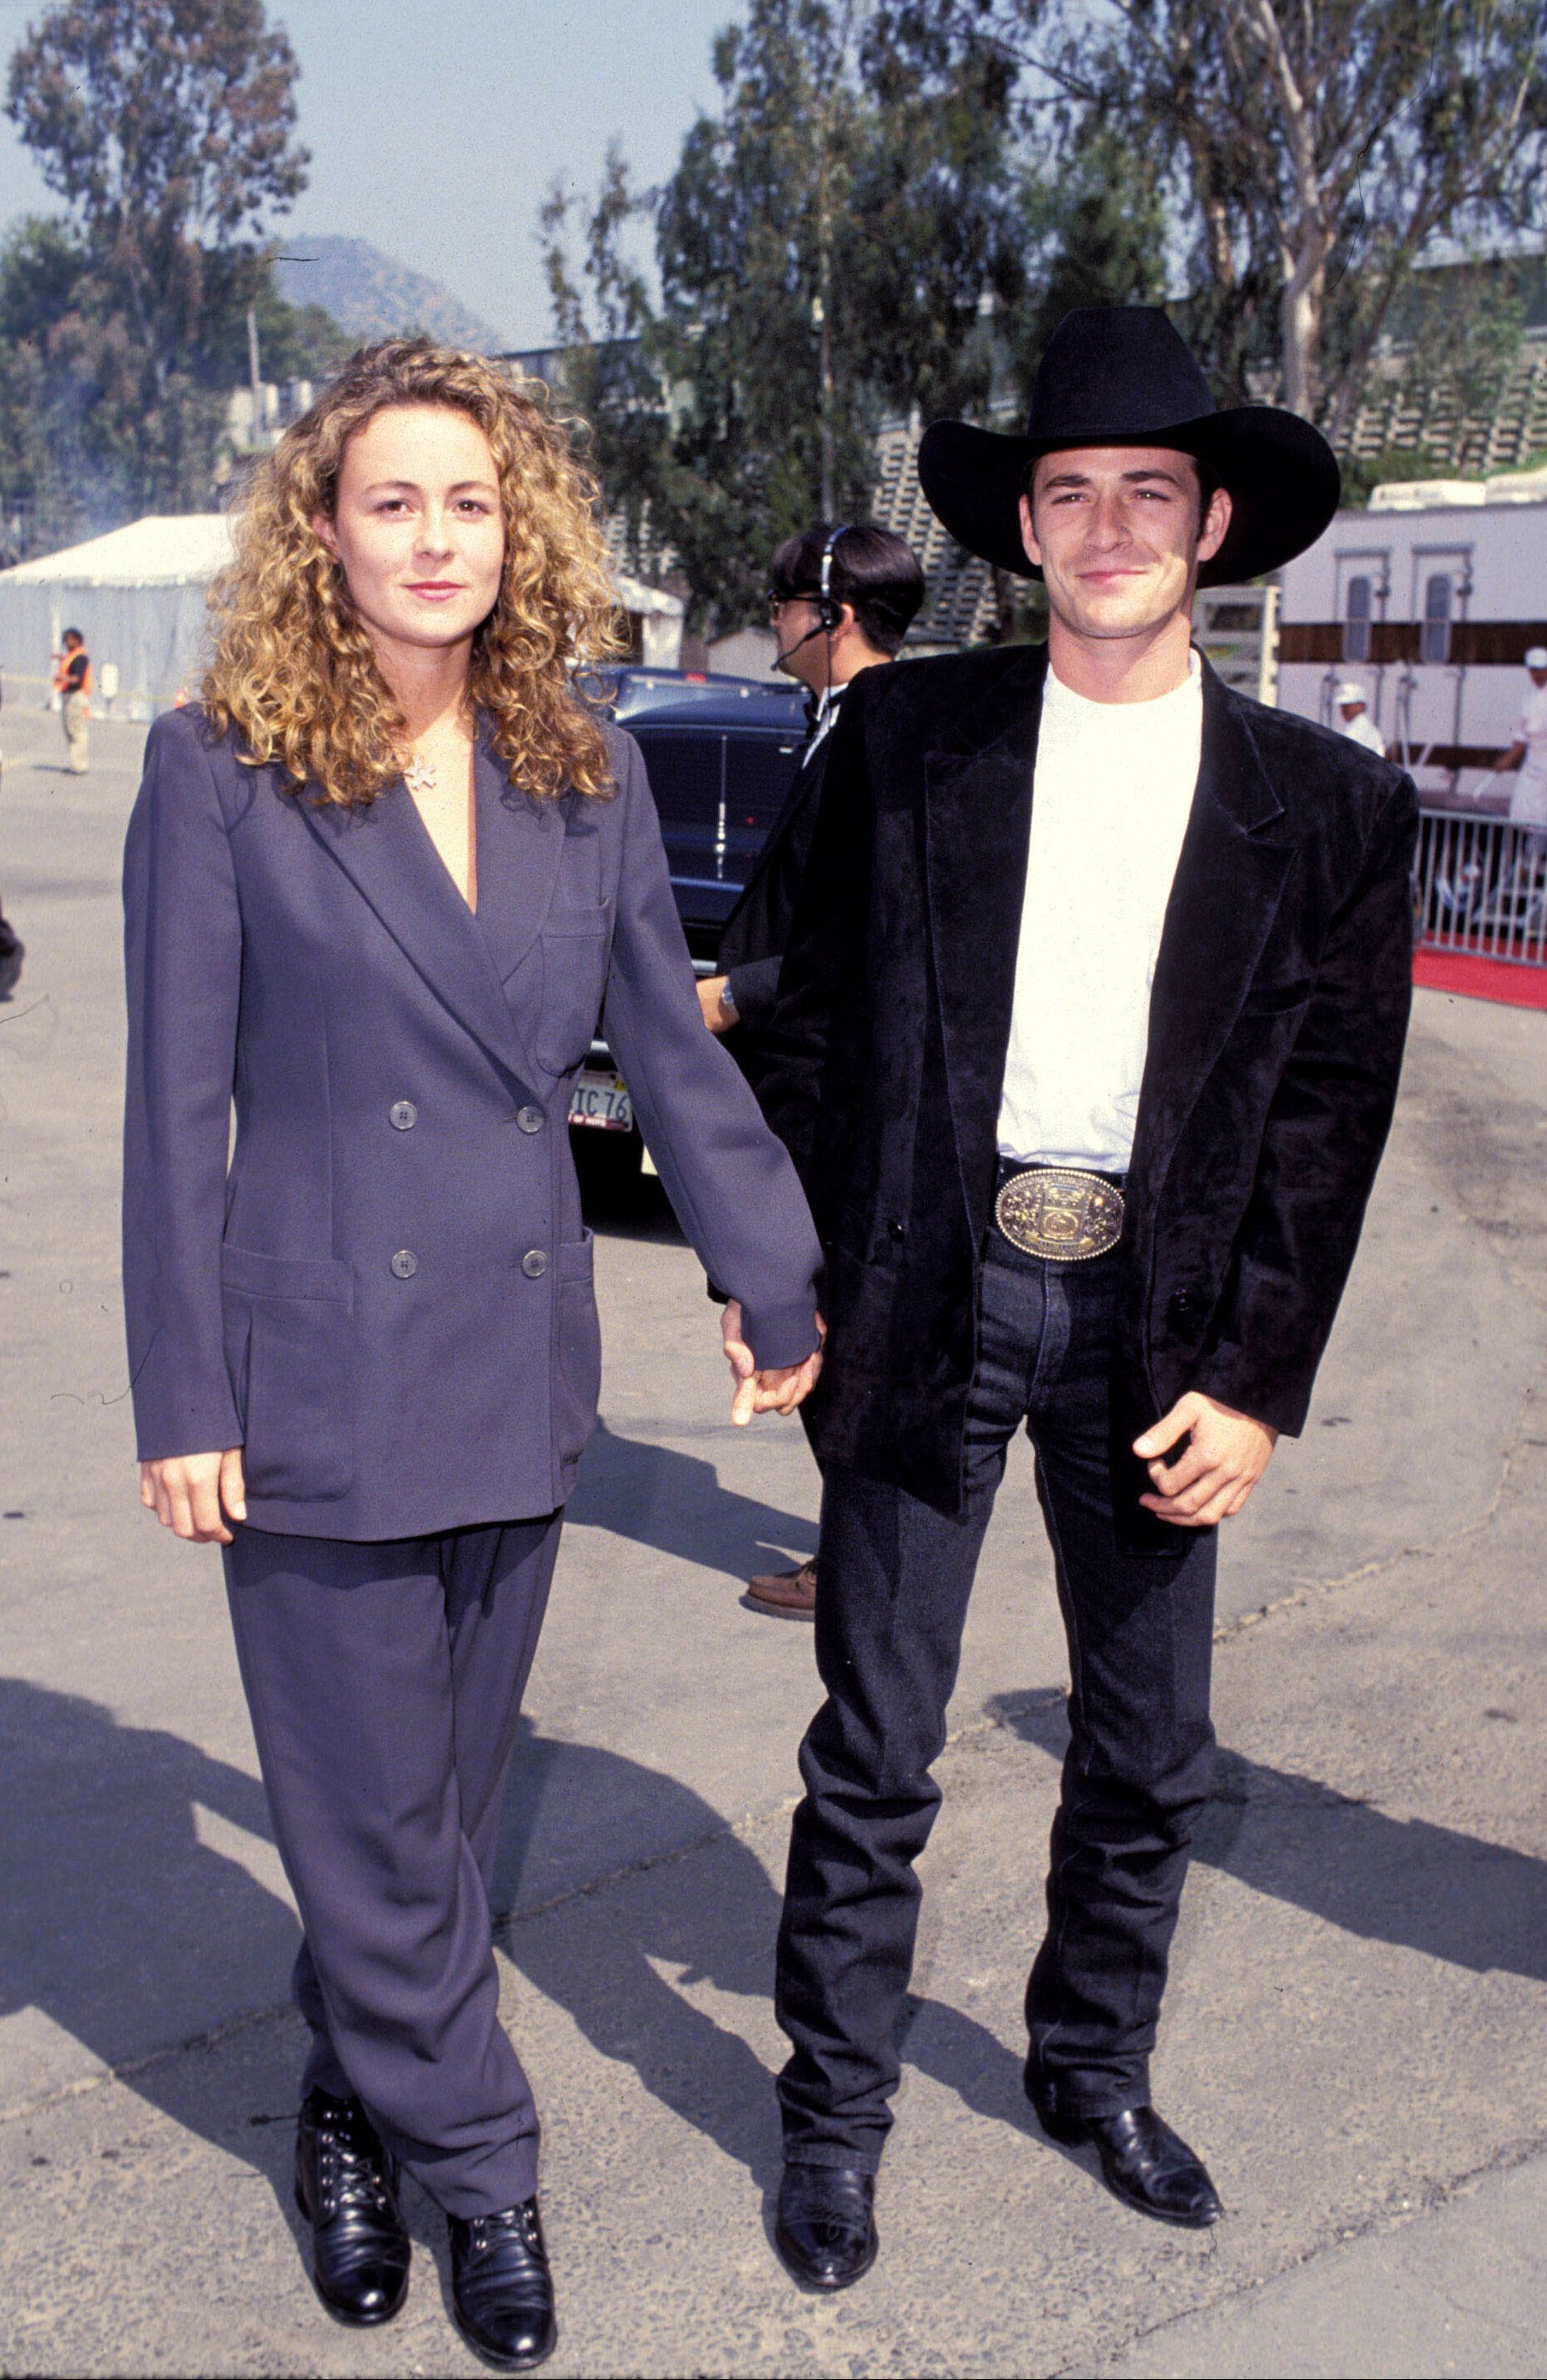 Minnie Sharp and Perry attending the 29th Annual Academy of Country Music Awards in 1991.